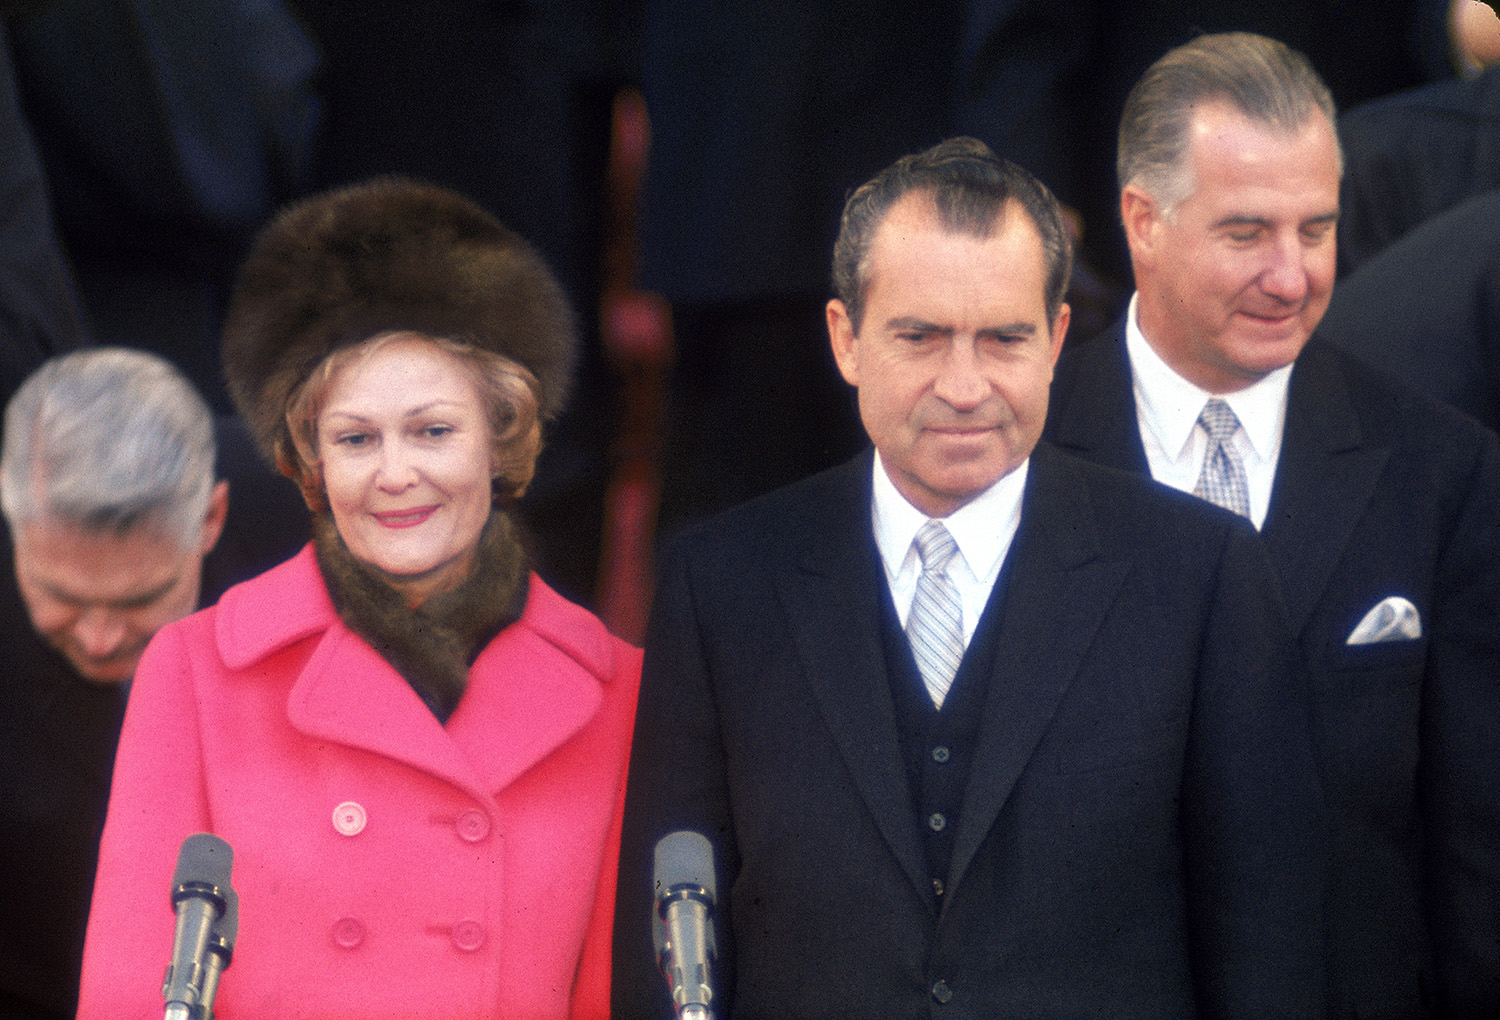 New First Lady Patricia Nixon with her husband, President Richard M. Nixon at his Inauguration. (Henry Groskinsky/The LIFE Picture Collection/Getty Images)